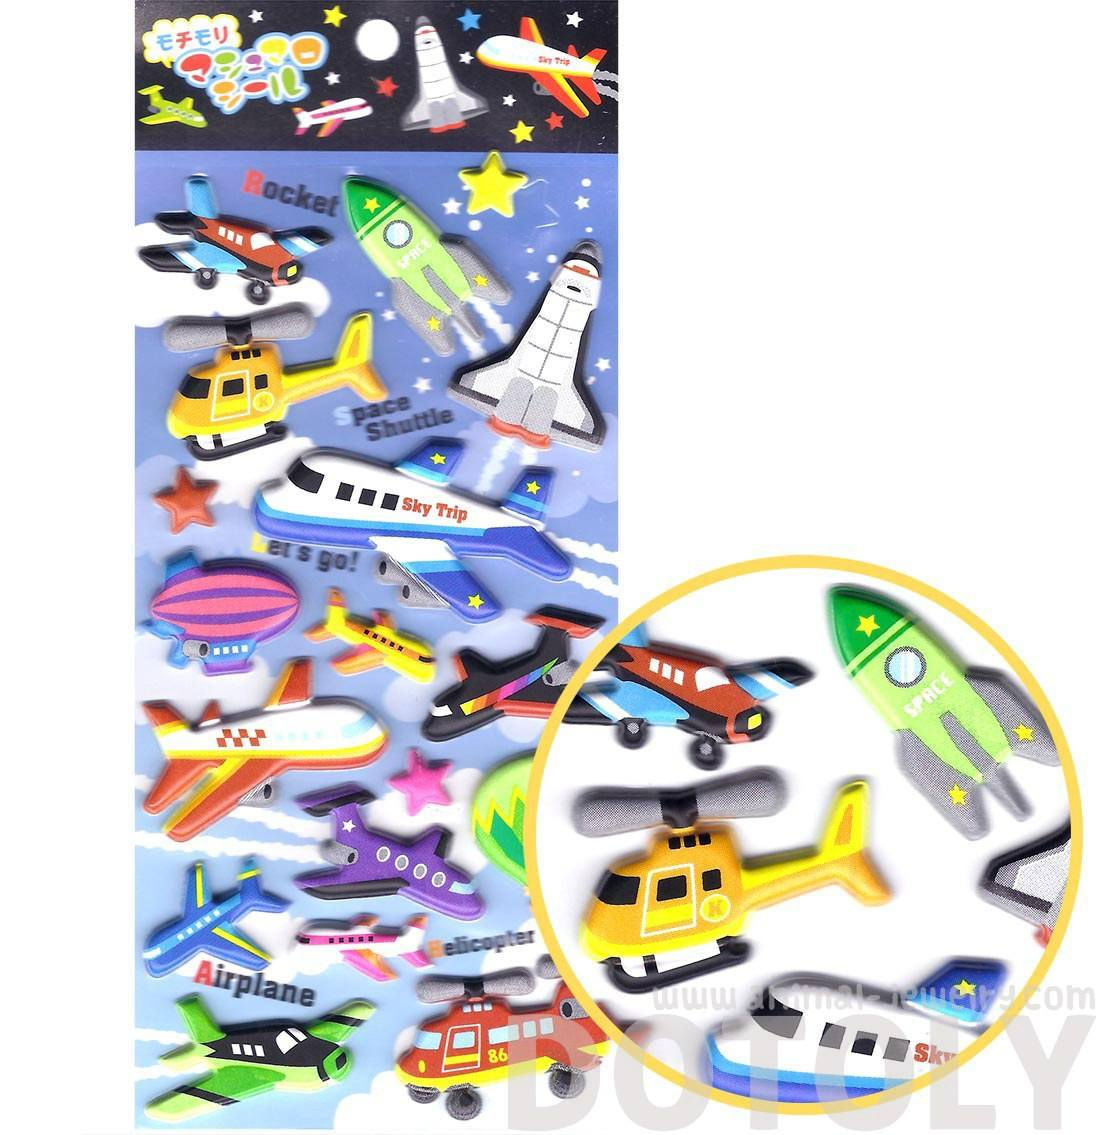 Super Puffy Cars Planes Spaceships Shaped Transport Themed Stickers